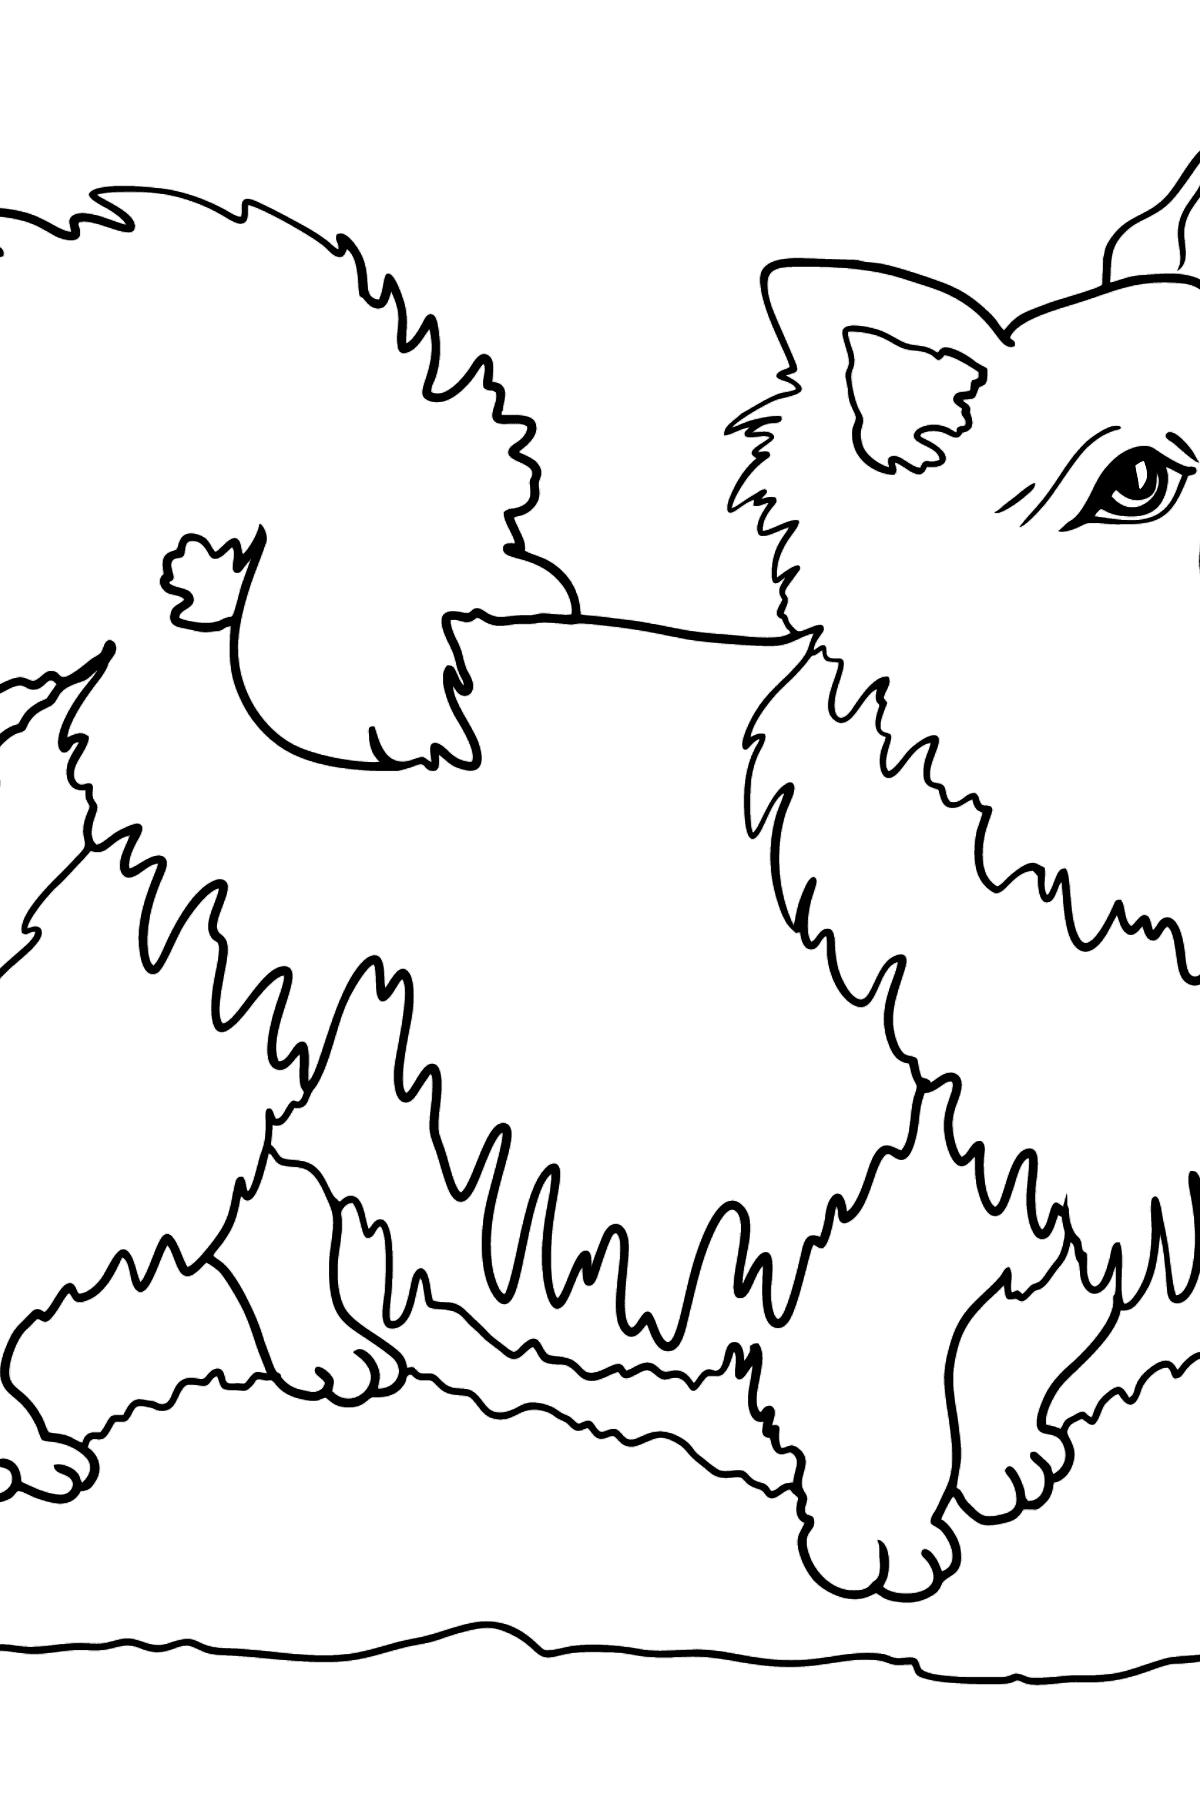 Chihuahua coloring page - Coloring Pages for Kids